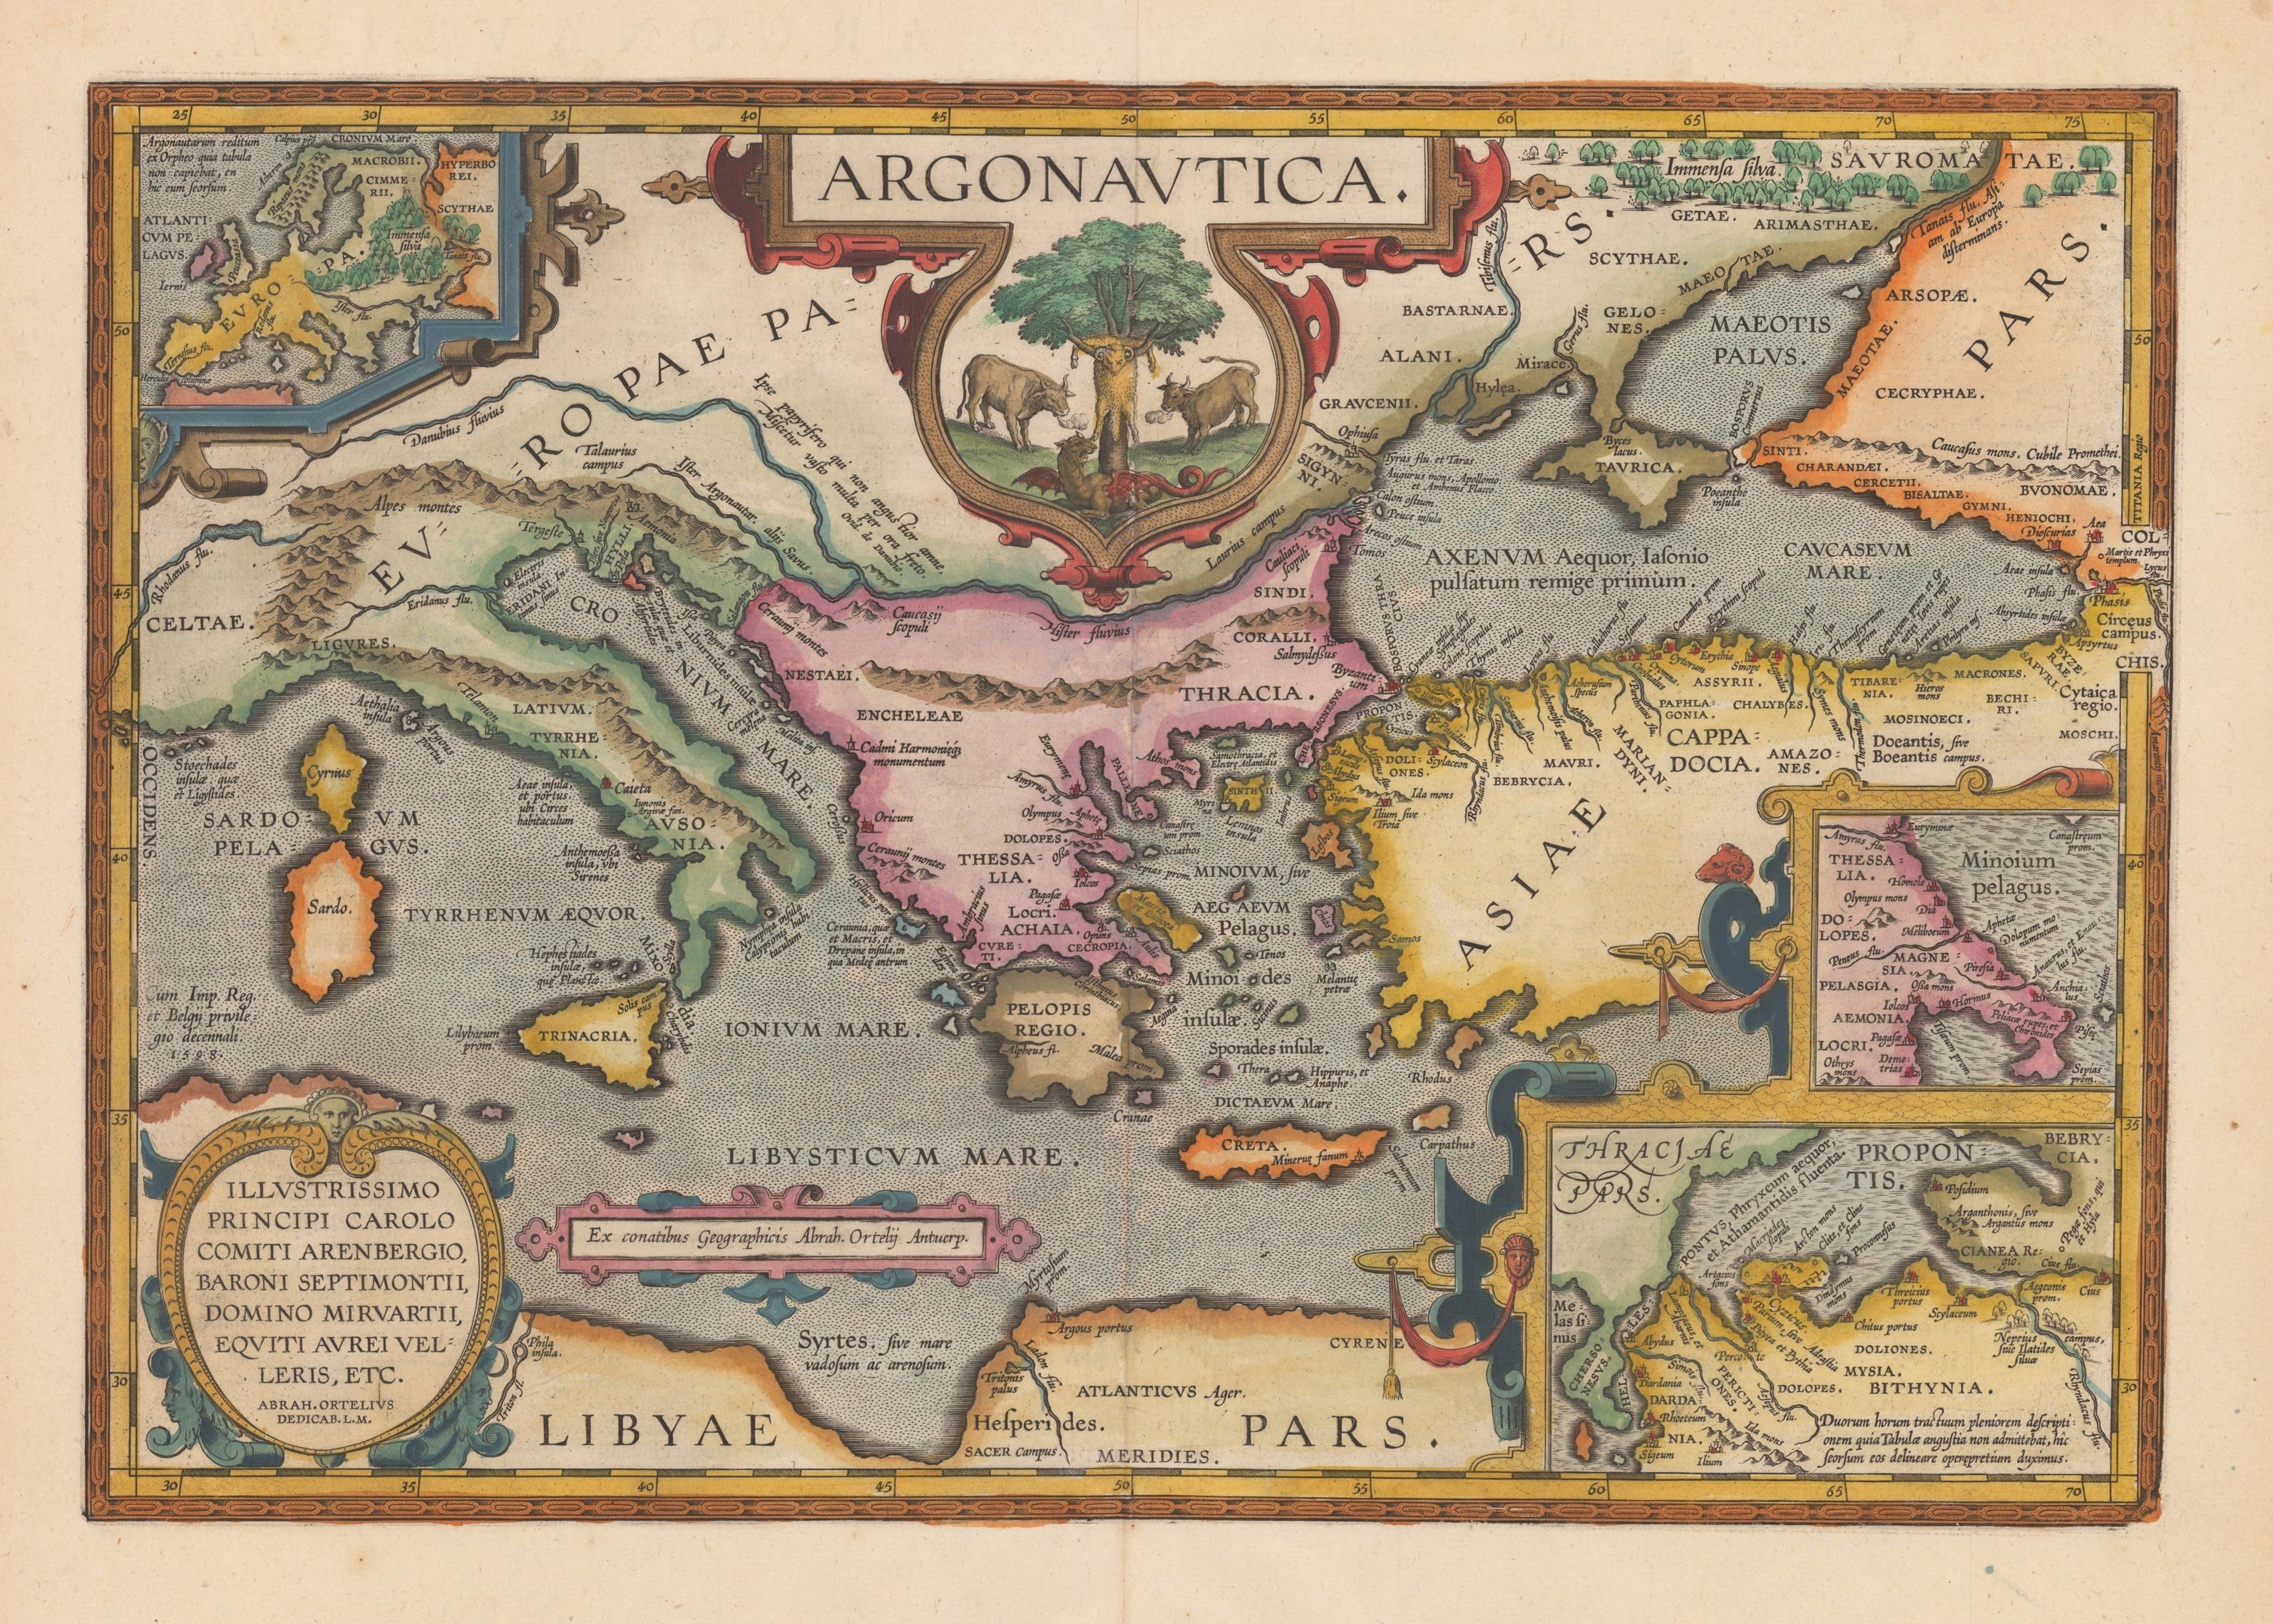 Argonavtica map by Abraham Ortelius Painting Ideas – Odyssey Travel Map